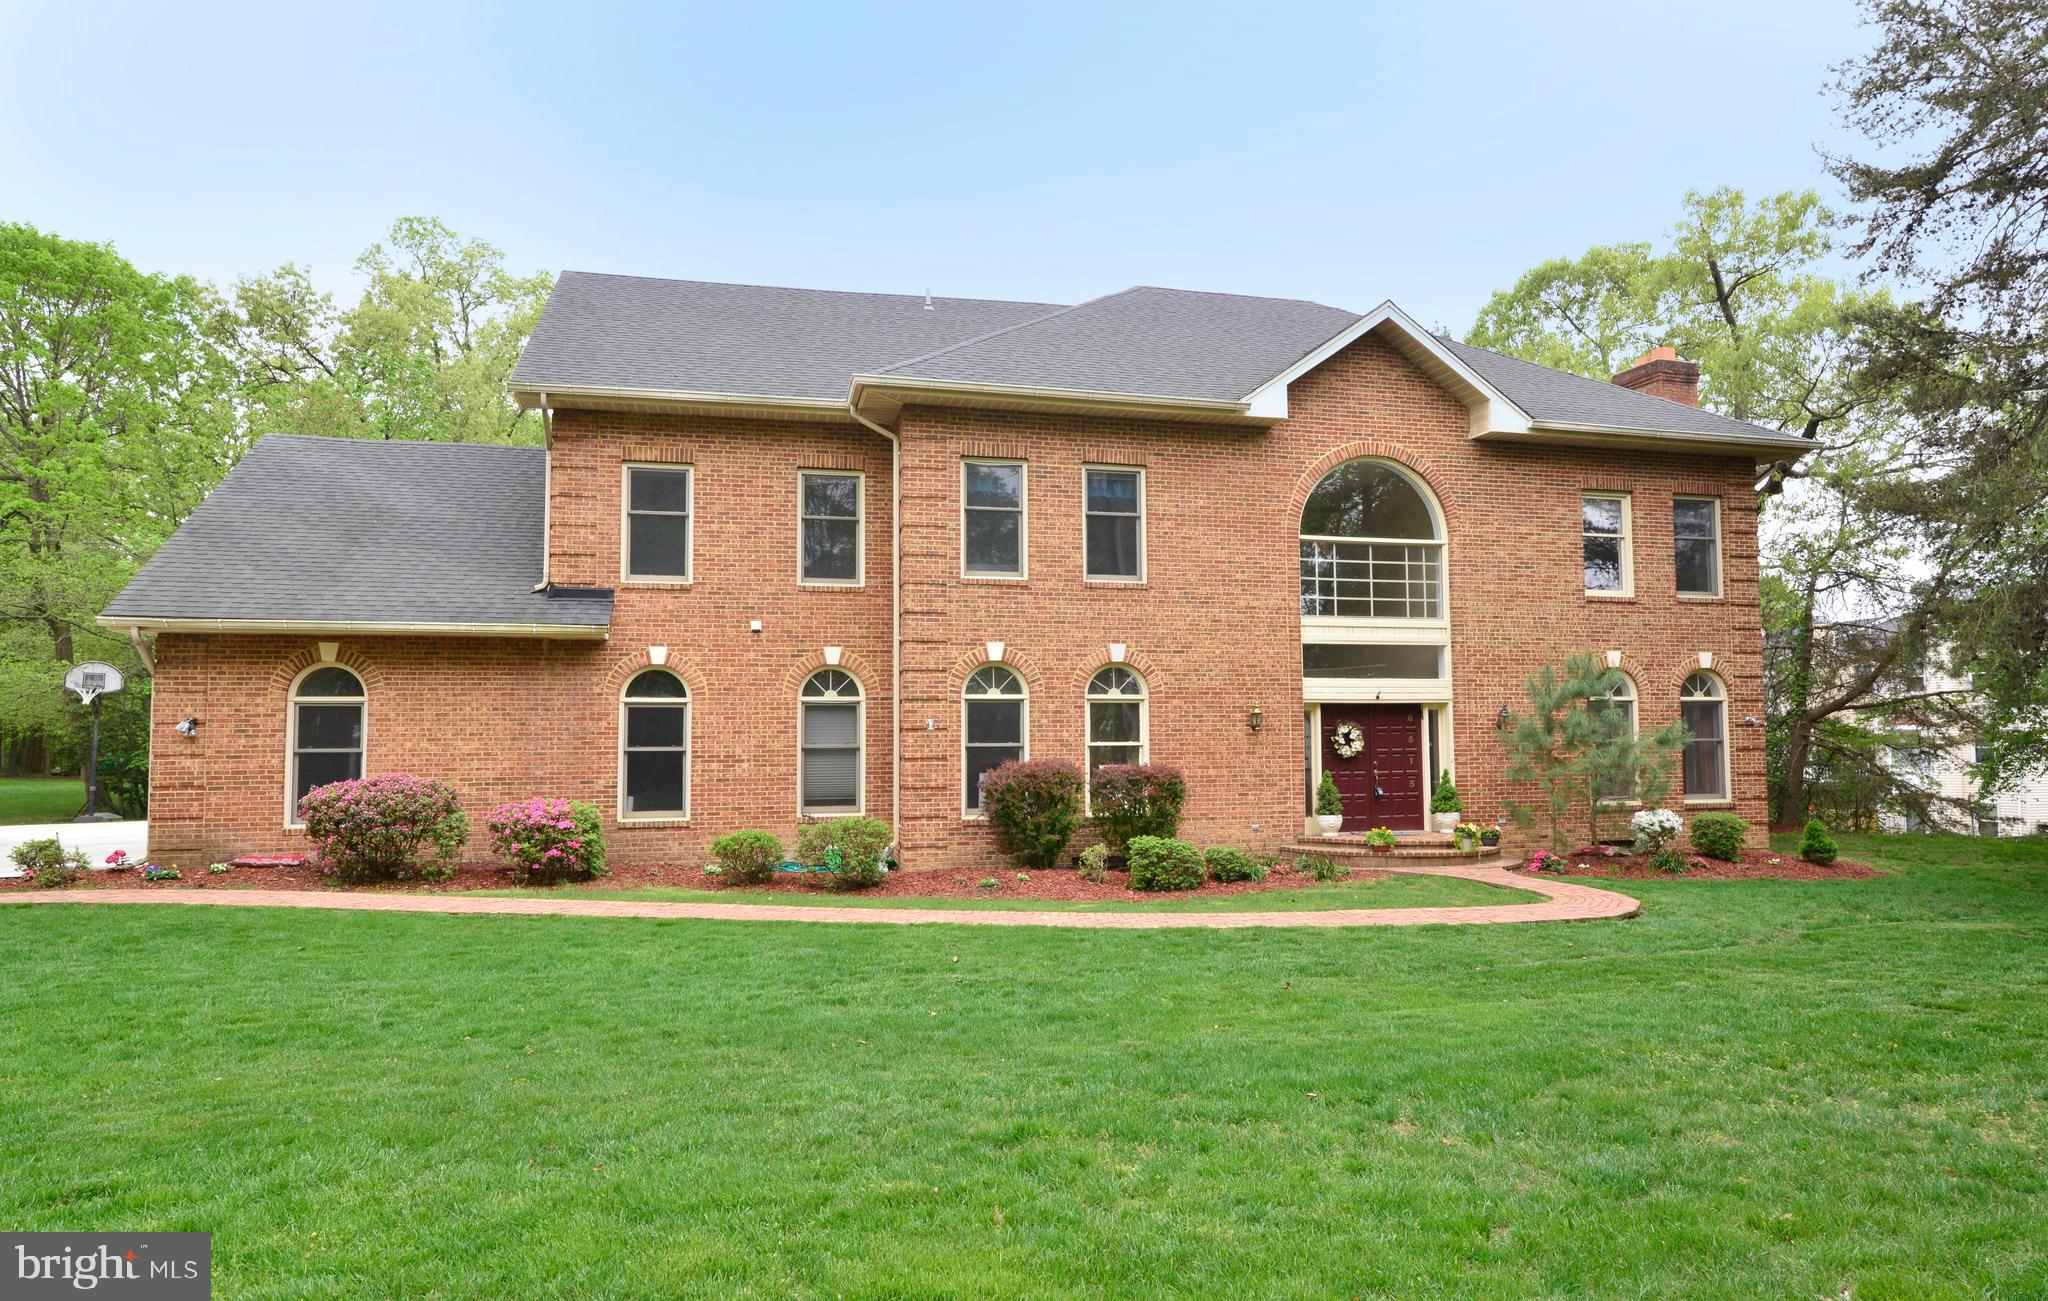 Secluded 1 Acre 6000+ Sq Ft 5BR/4.5BA Home at End of Private Road in Kingstowne area! Highly rare to find this privacy, peace & quiet in a location like this: